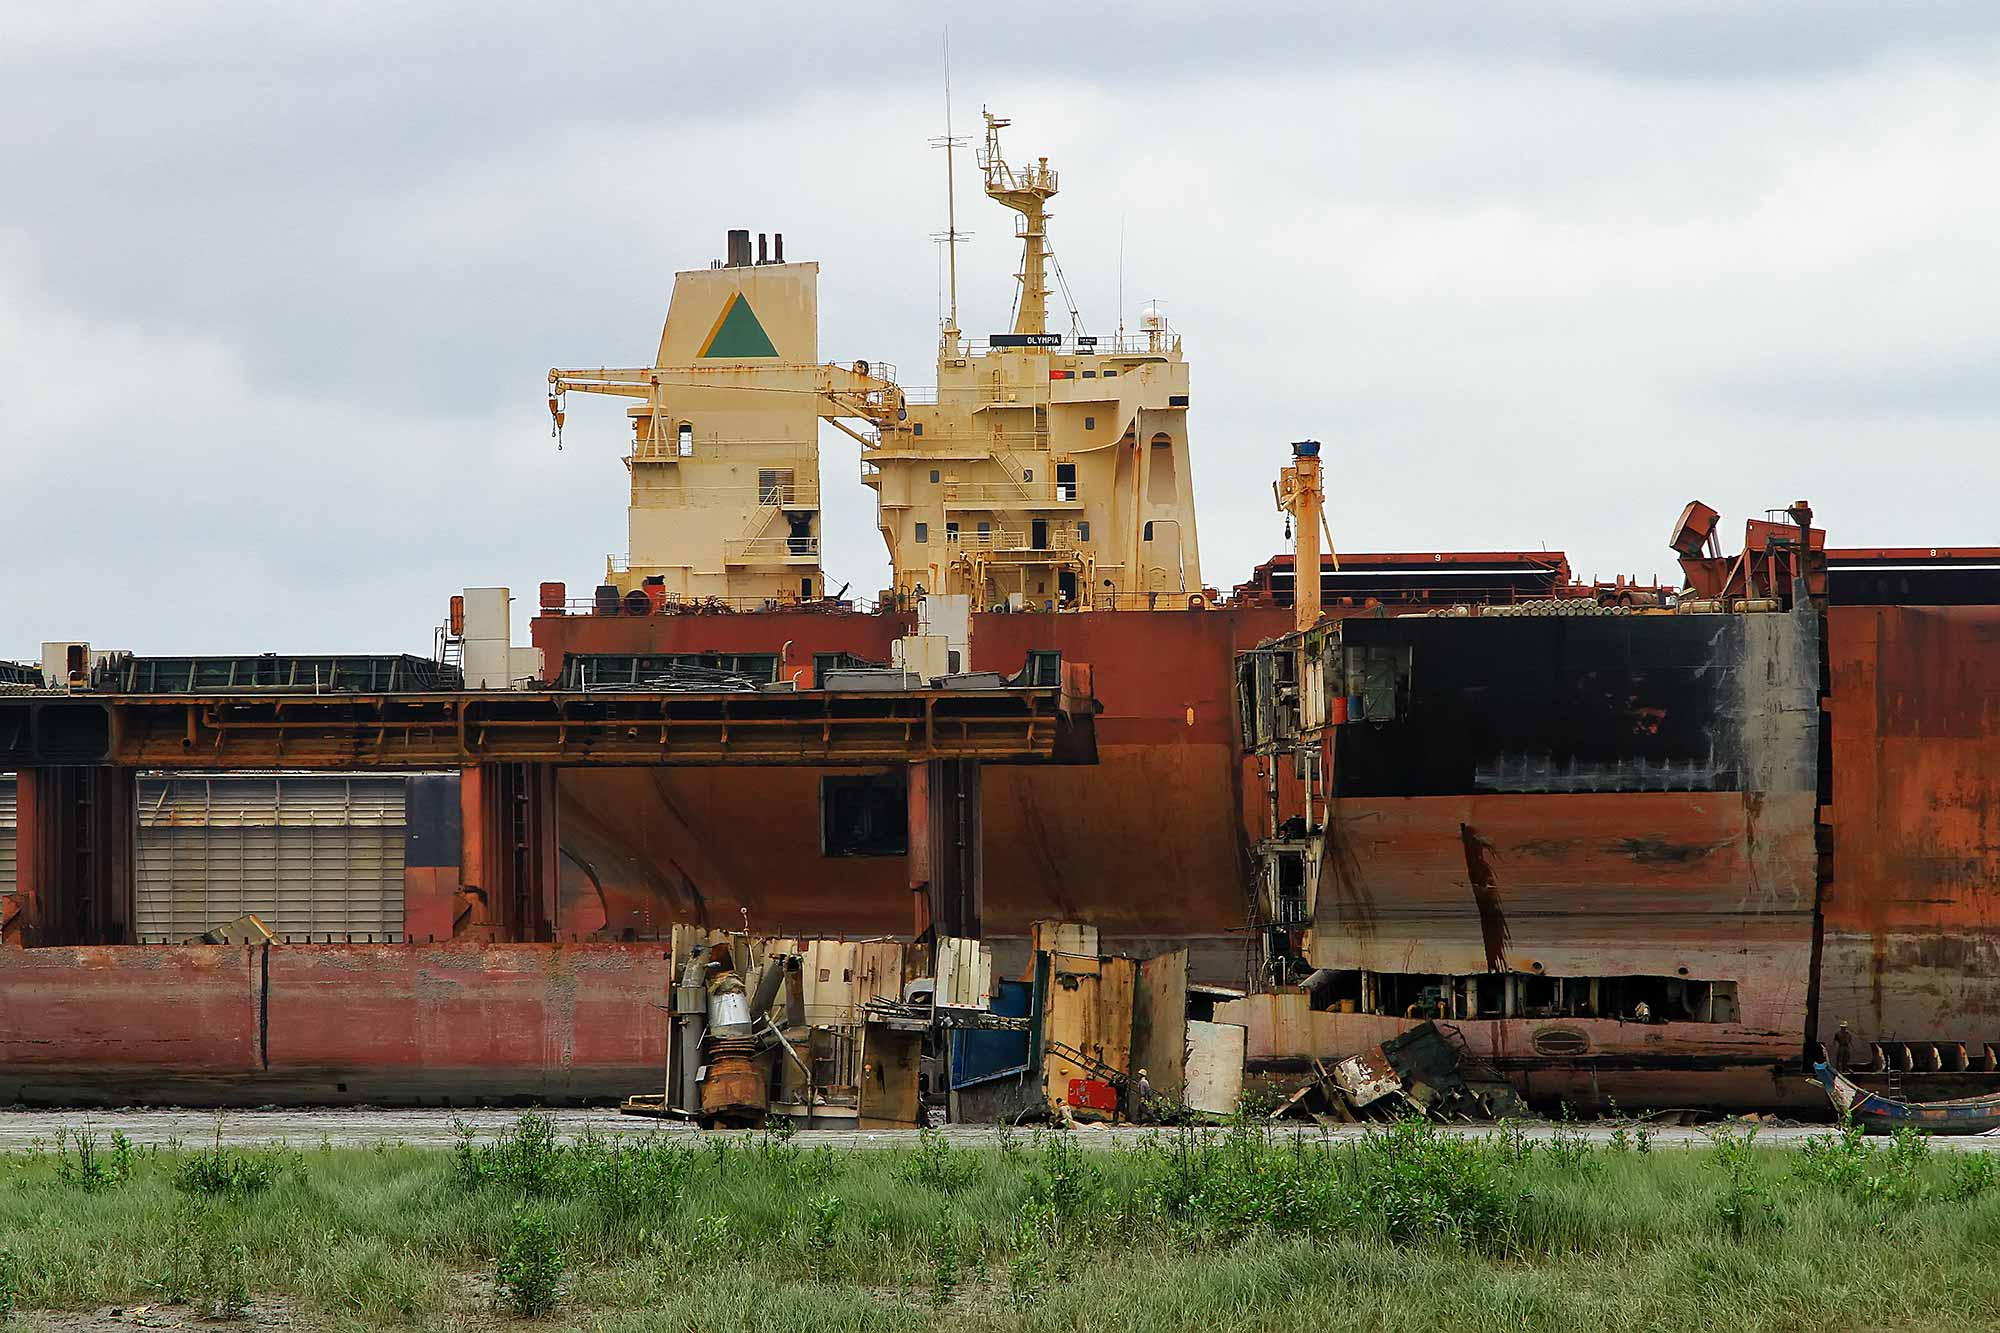 chittagong-ship-breaking-yarg-bangladesh-asia